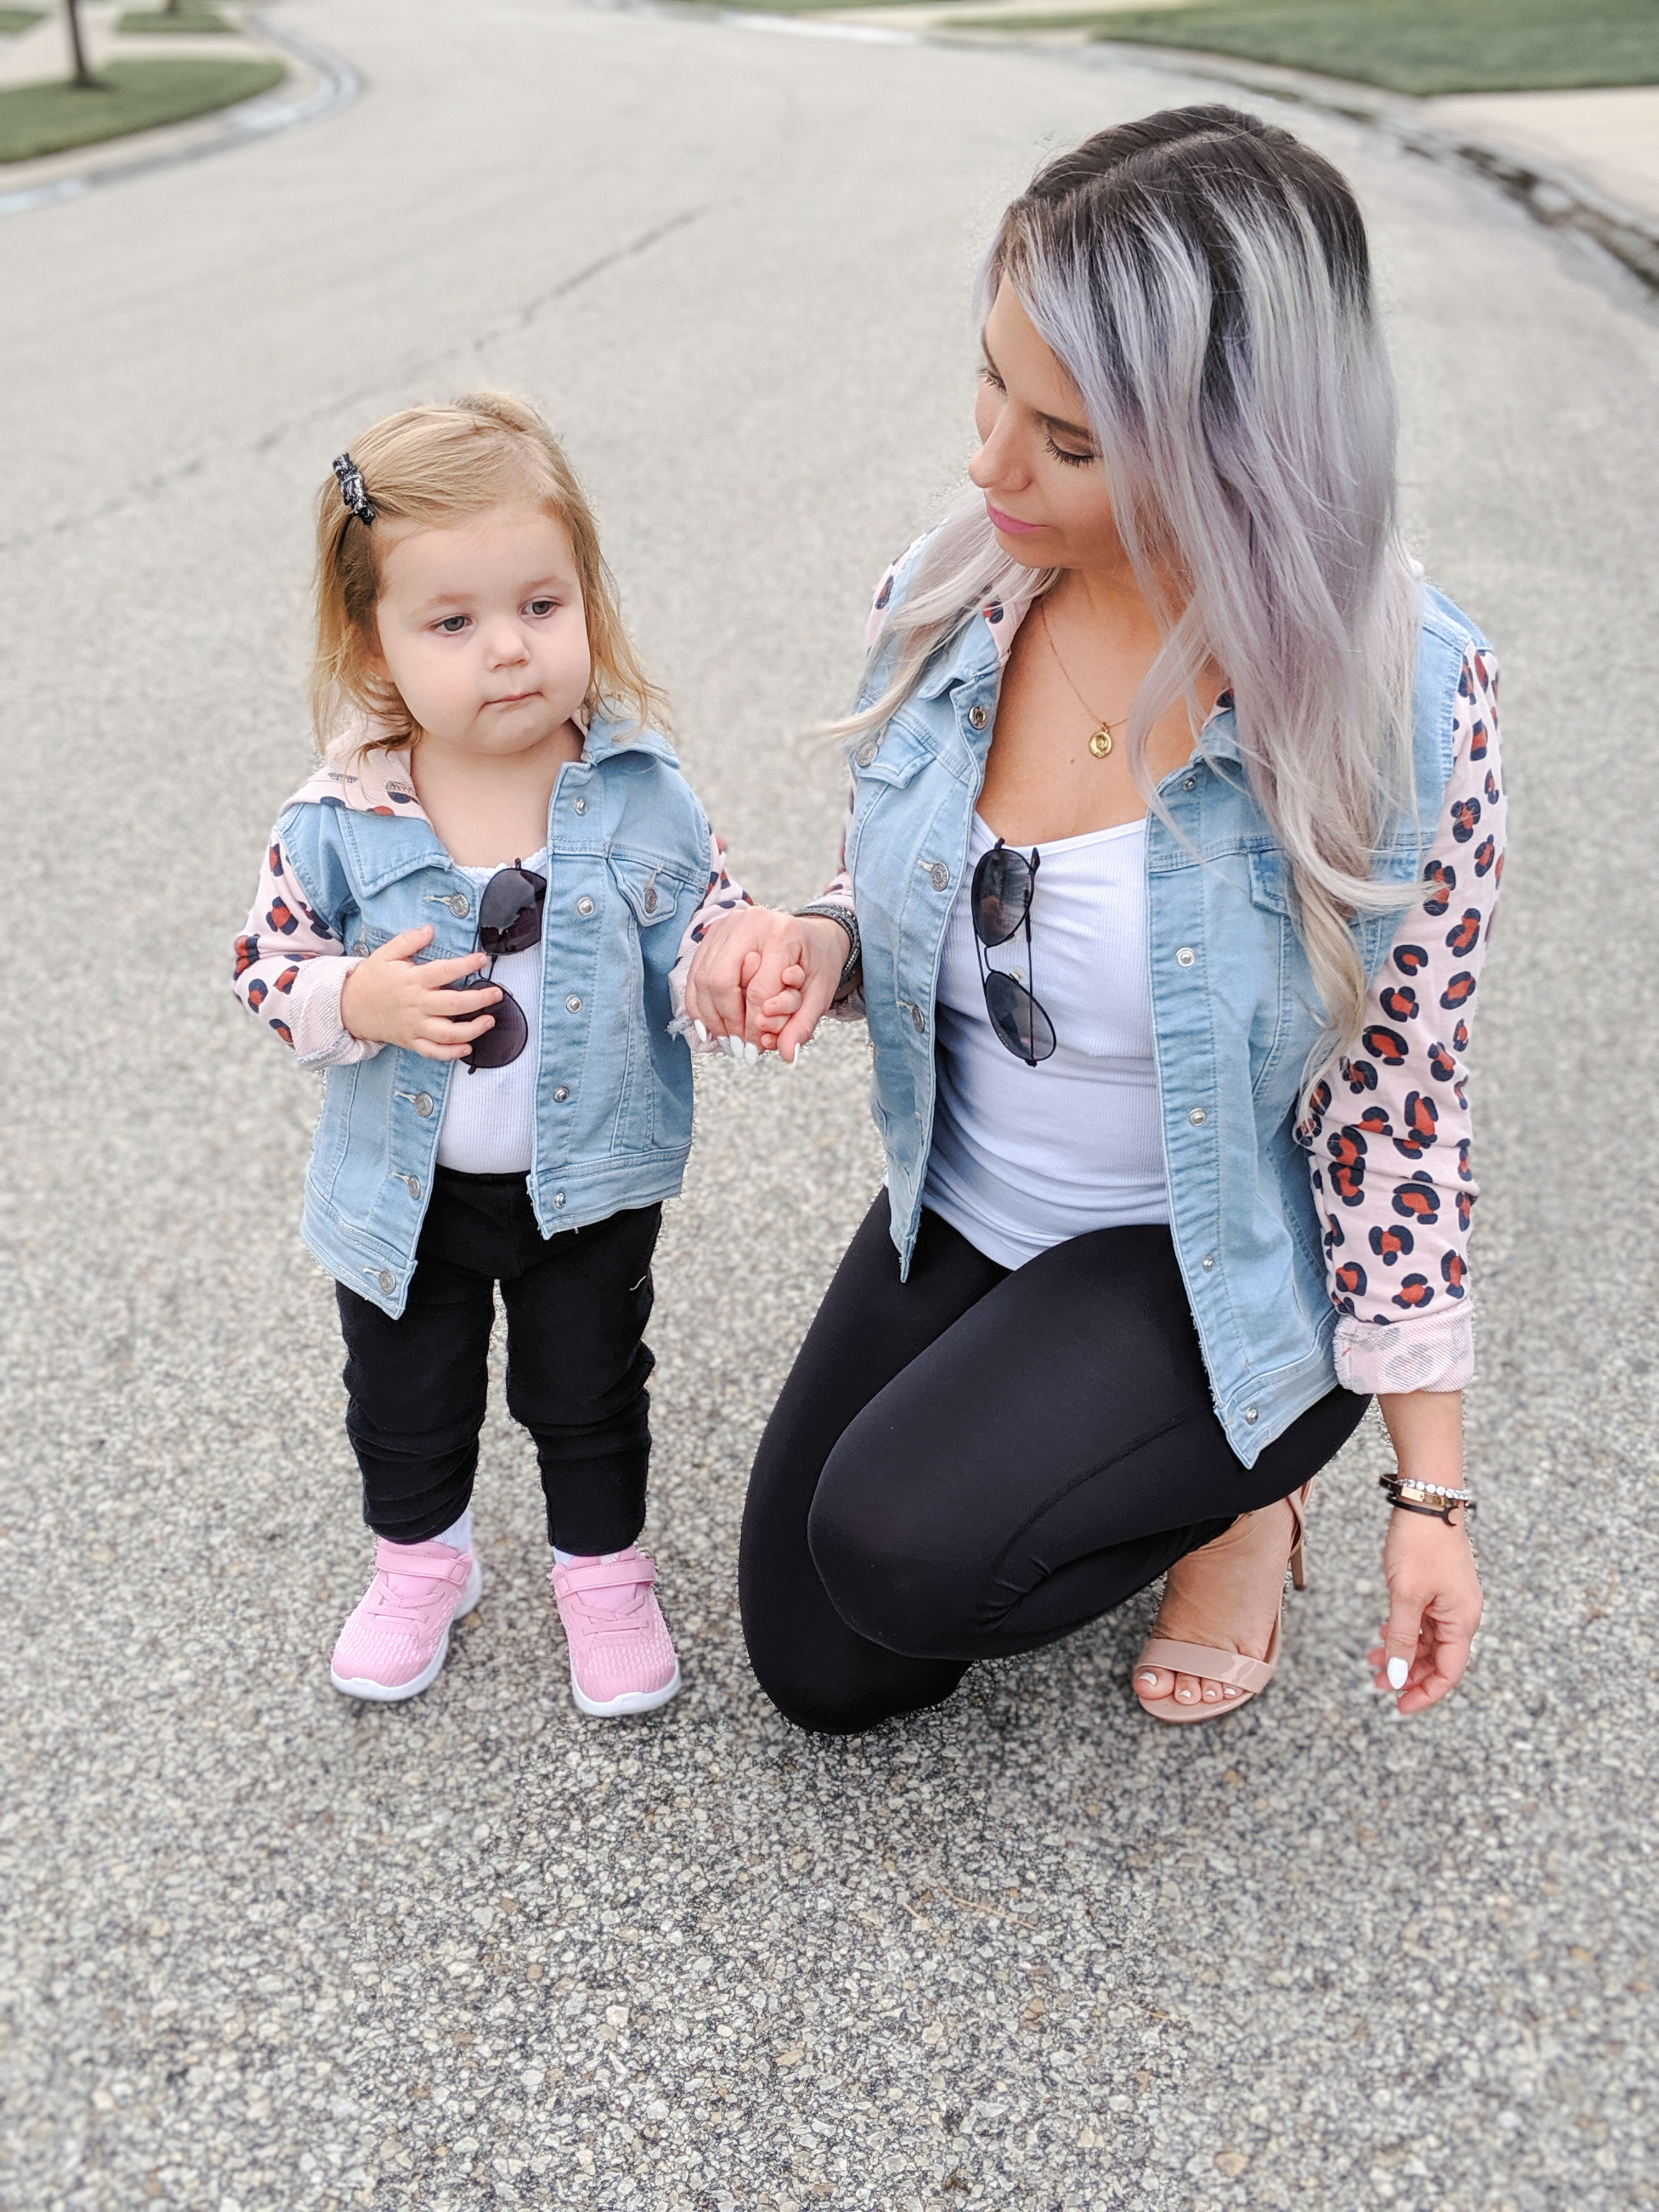 Mommy and Me Outfits, Mommy and Me Jackets, Target clothes, Target fashion, Mommy and Me outfits from Target, leopard print mom and me, girl mom, mom and daughter photos, #targetstyle #target #leopardprint Fall Outfits 2019